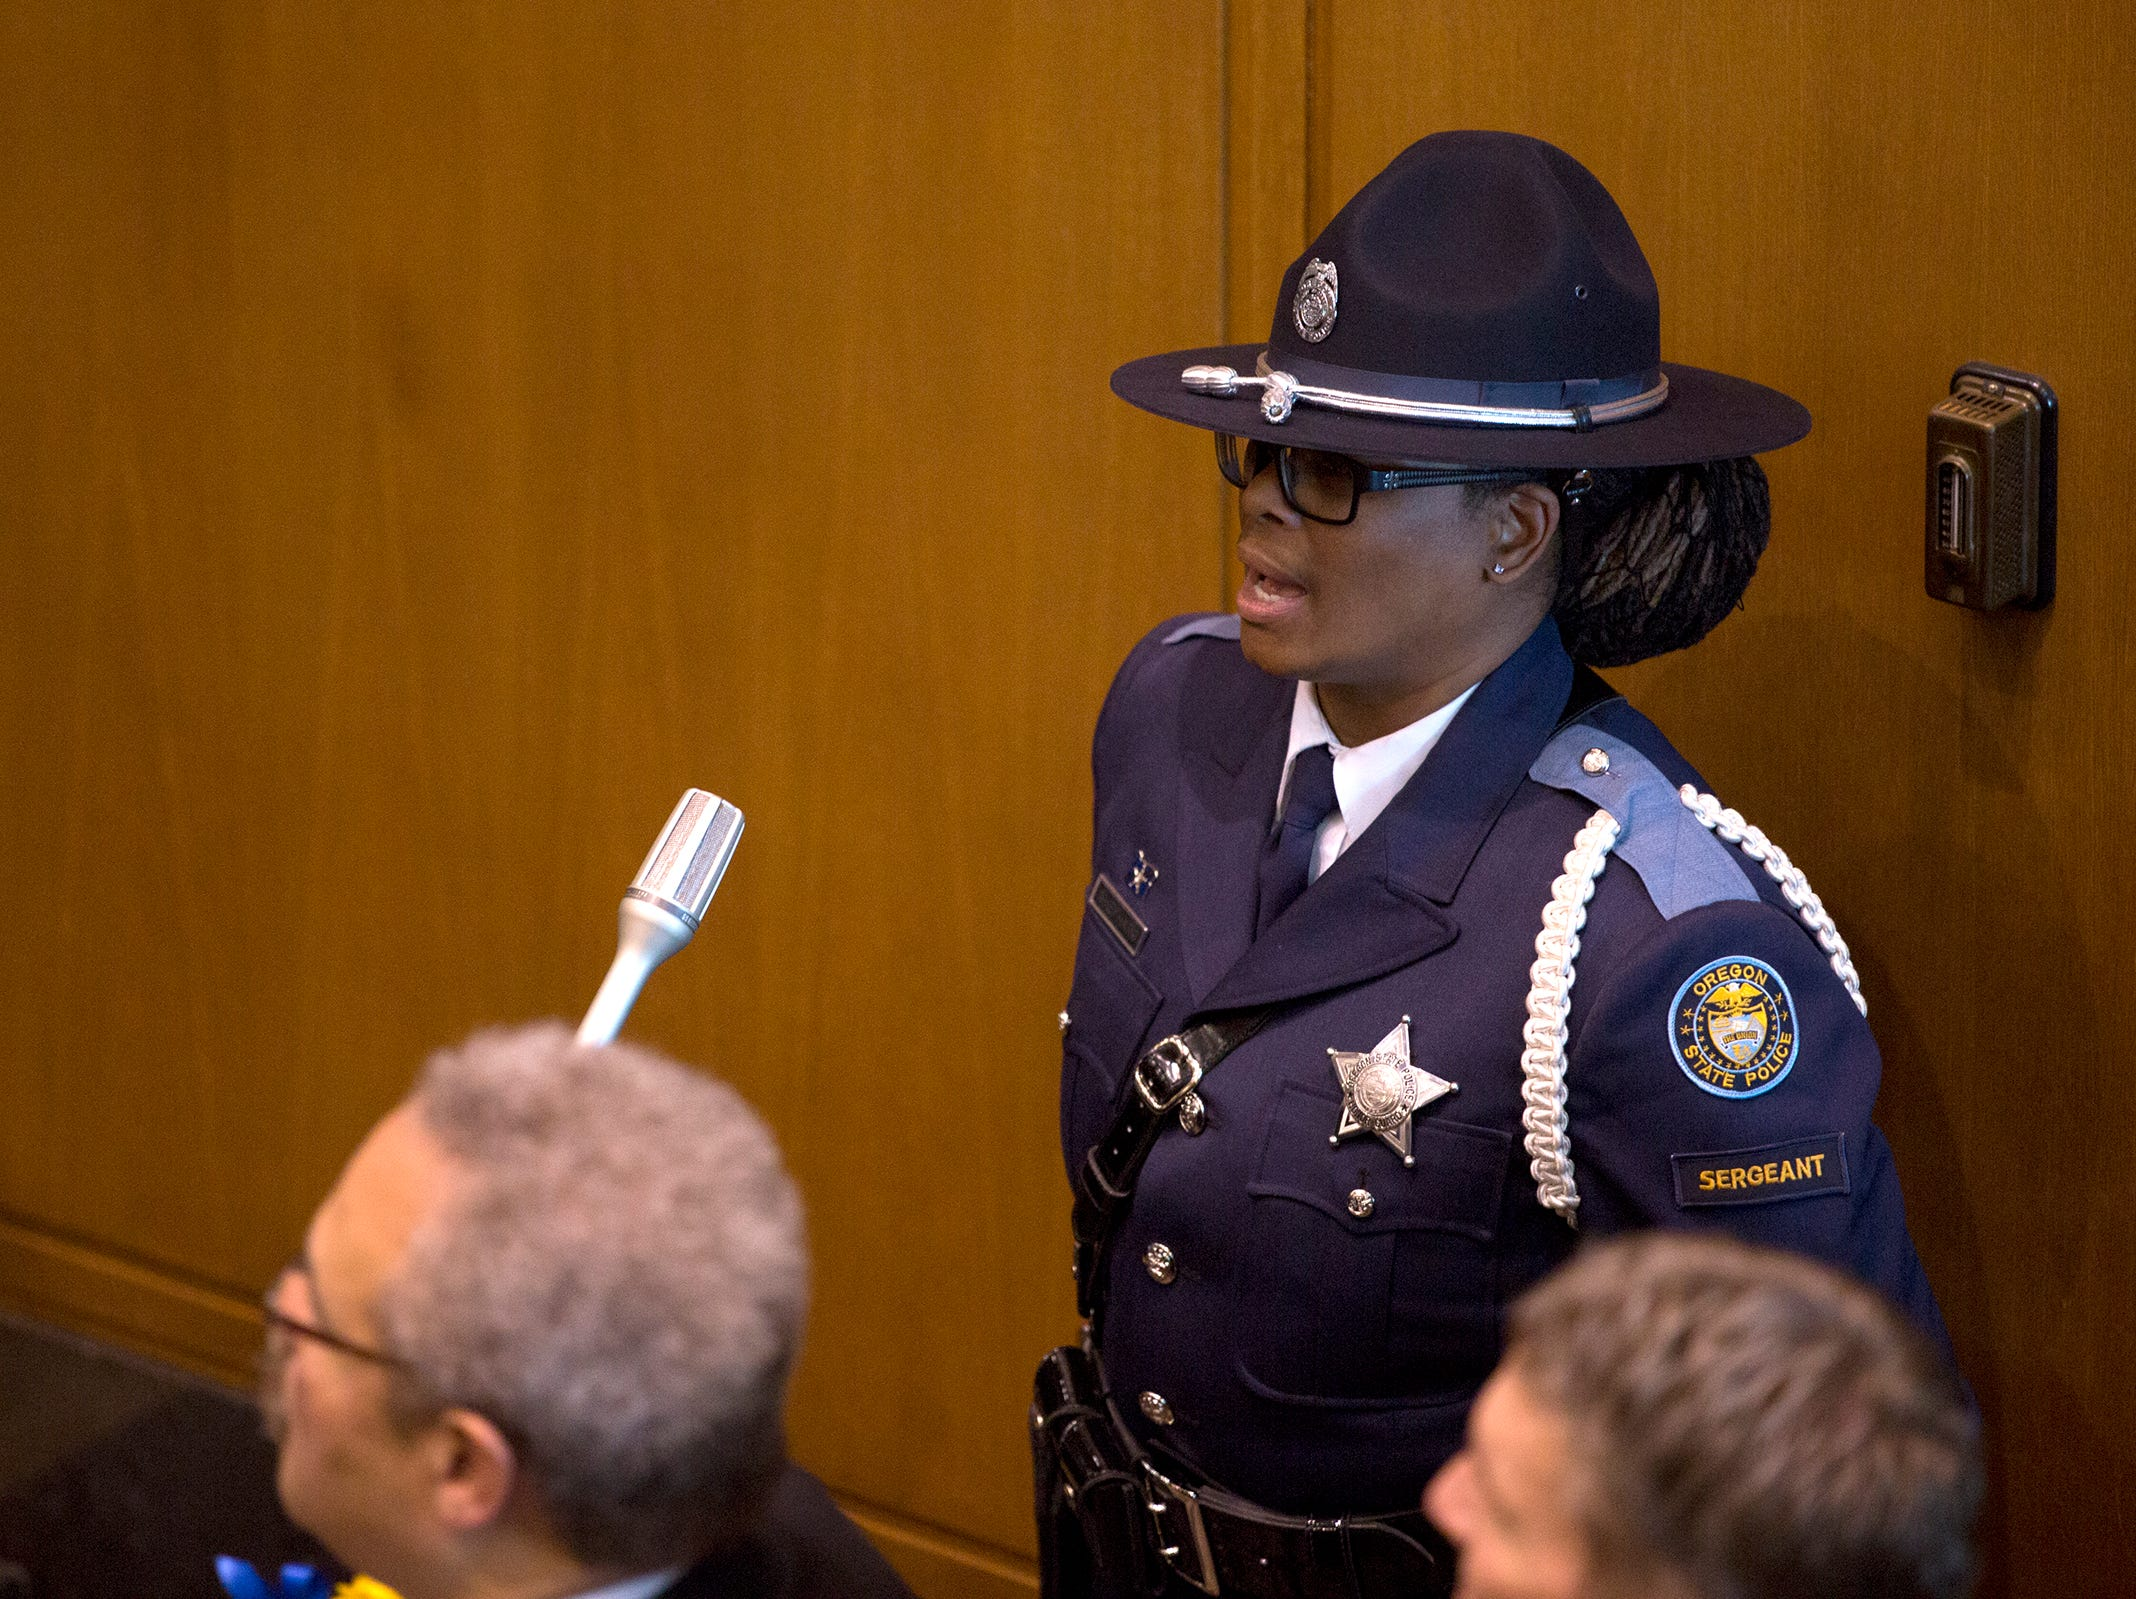 Patrol Sergeant Yvette Shephard sings The Star Spangled Banner before Governor Kate Brown addresses the state legislature at her inauguration at the Oregon State Capitol on Jan. 14, 2019.